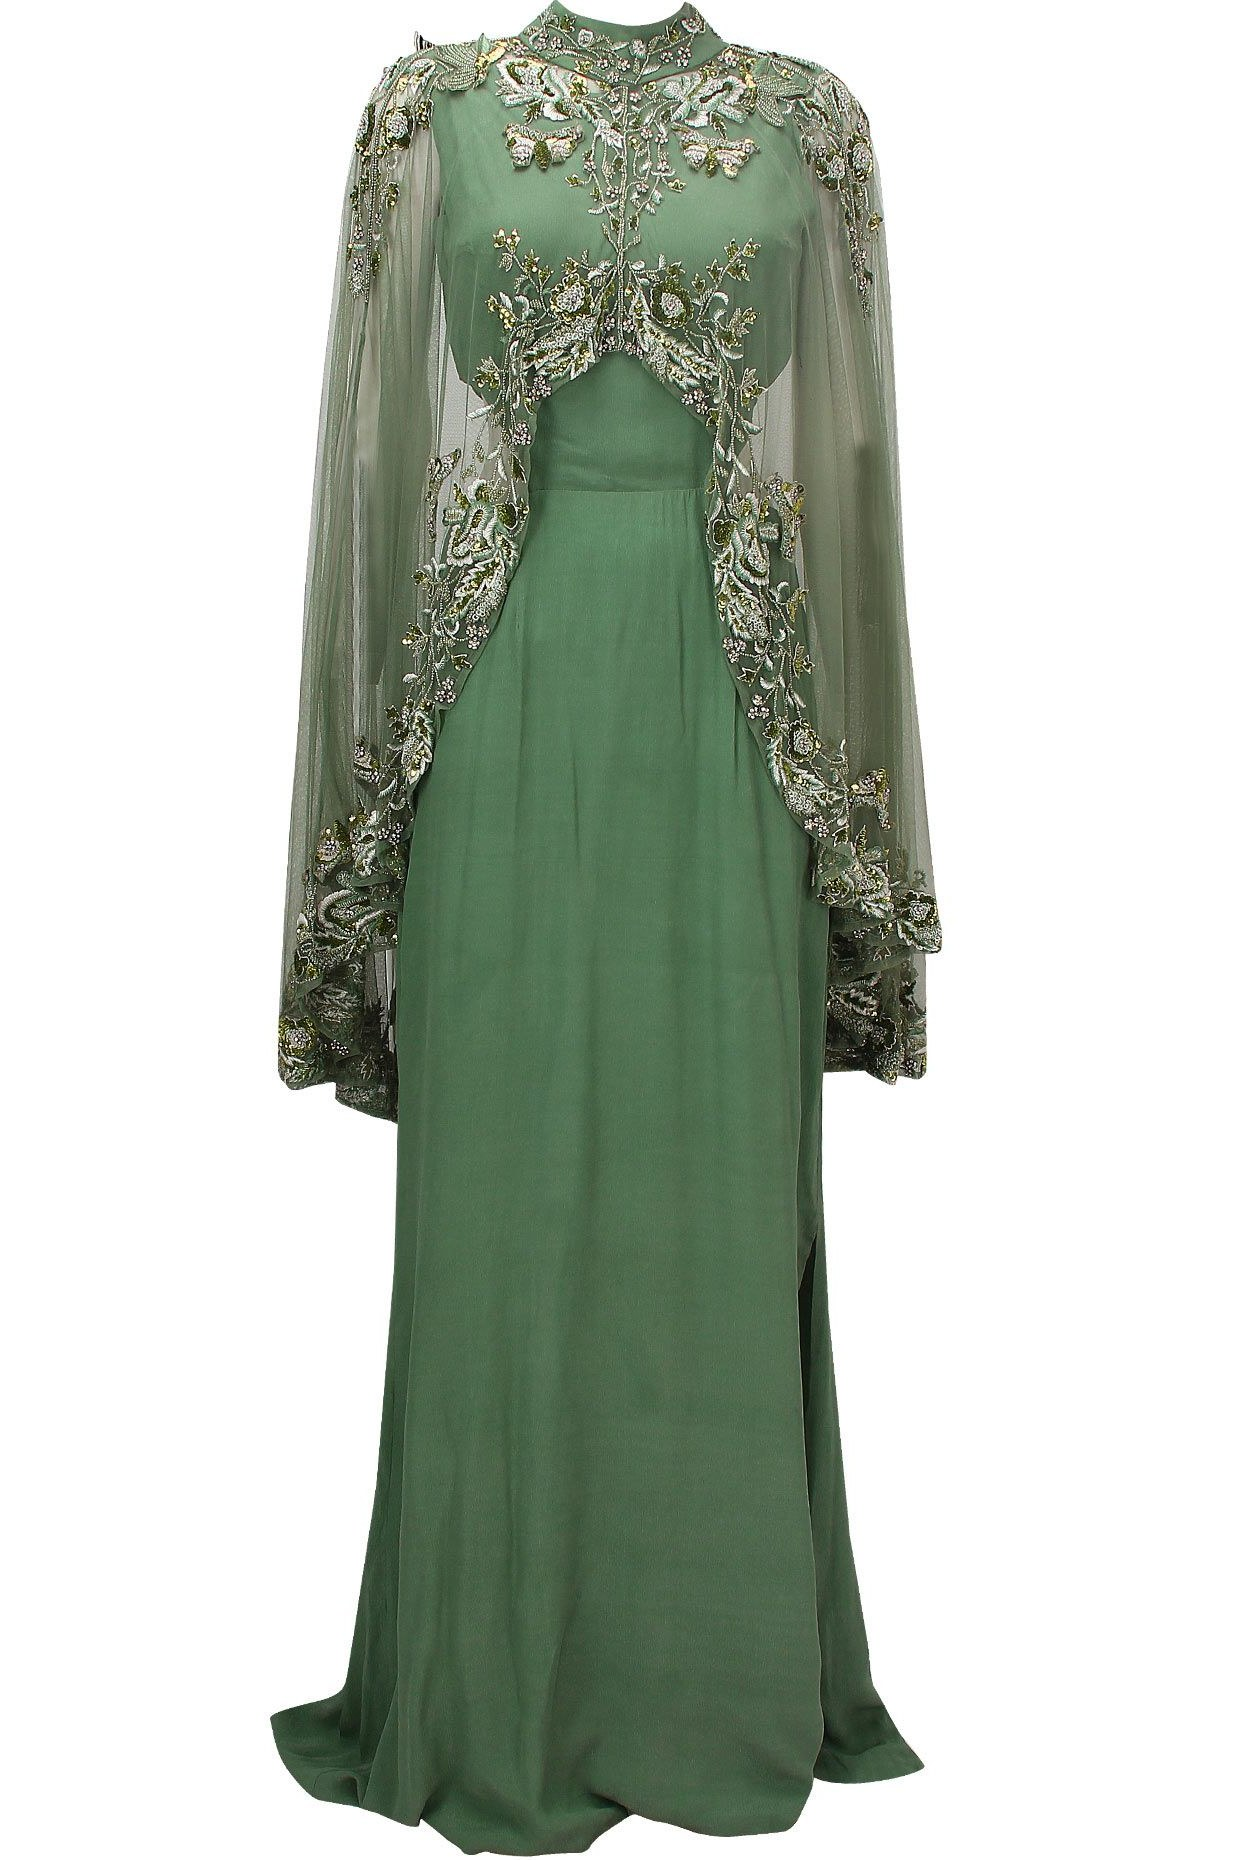 Design Model Baju Gamis Untuk Resepsi Pernikahan Bqdd Green Cutout Goddess Gown with Embroidered High Low Sheer